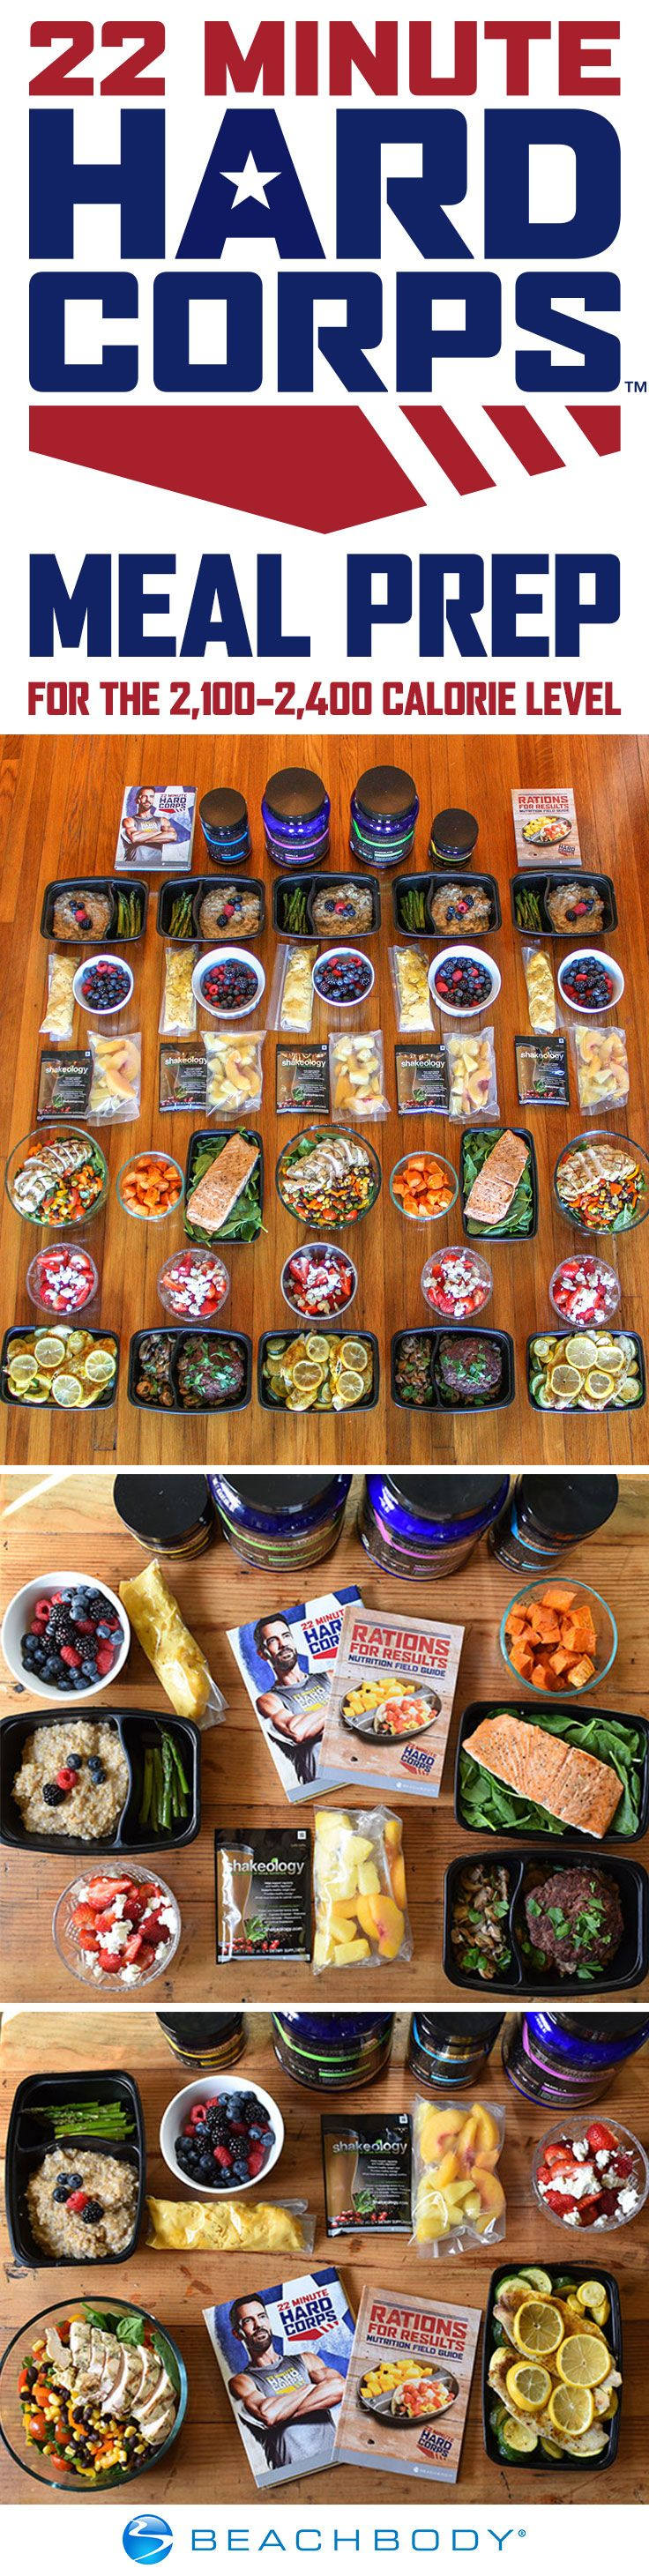 Now that you've committed to building a Boot Camp Body with 22 Minute Hard Corps, your Mission is to work out hard and eat right, so you can enjoy those re